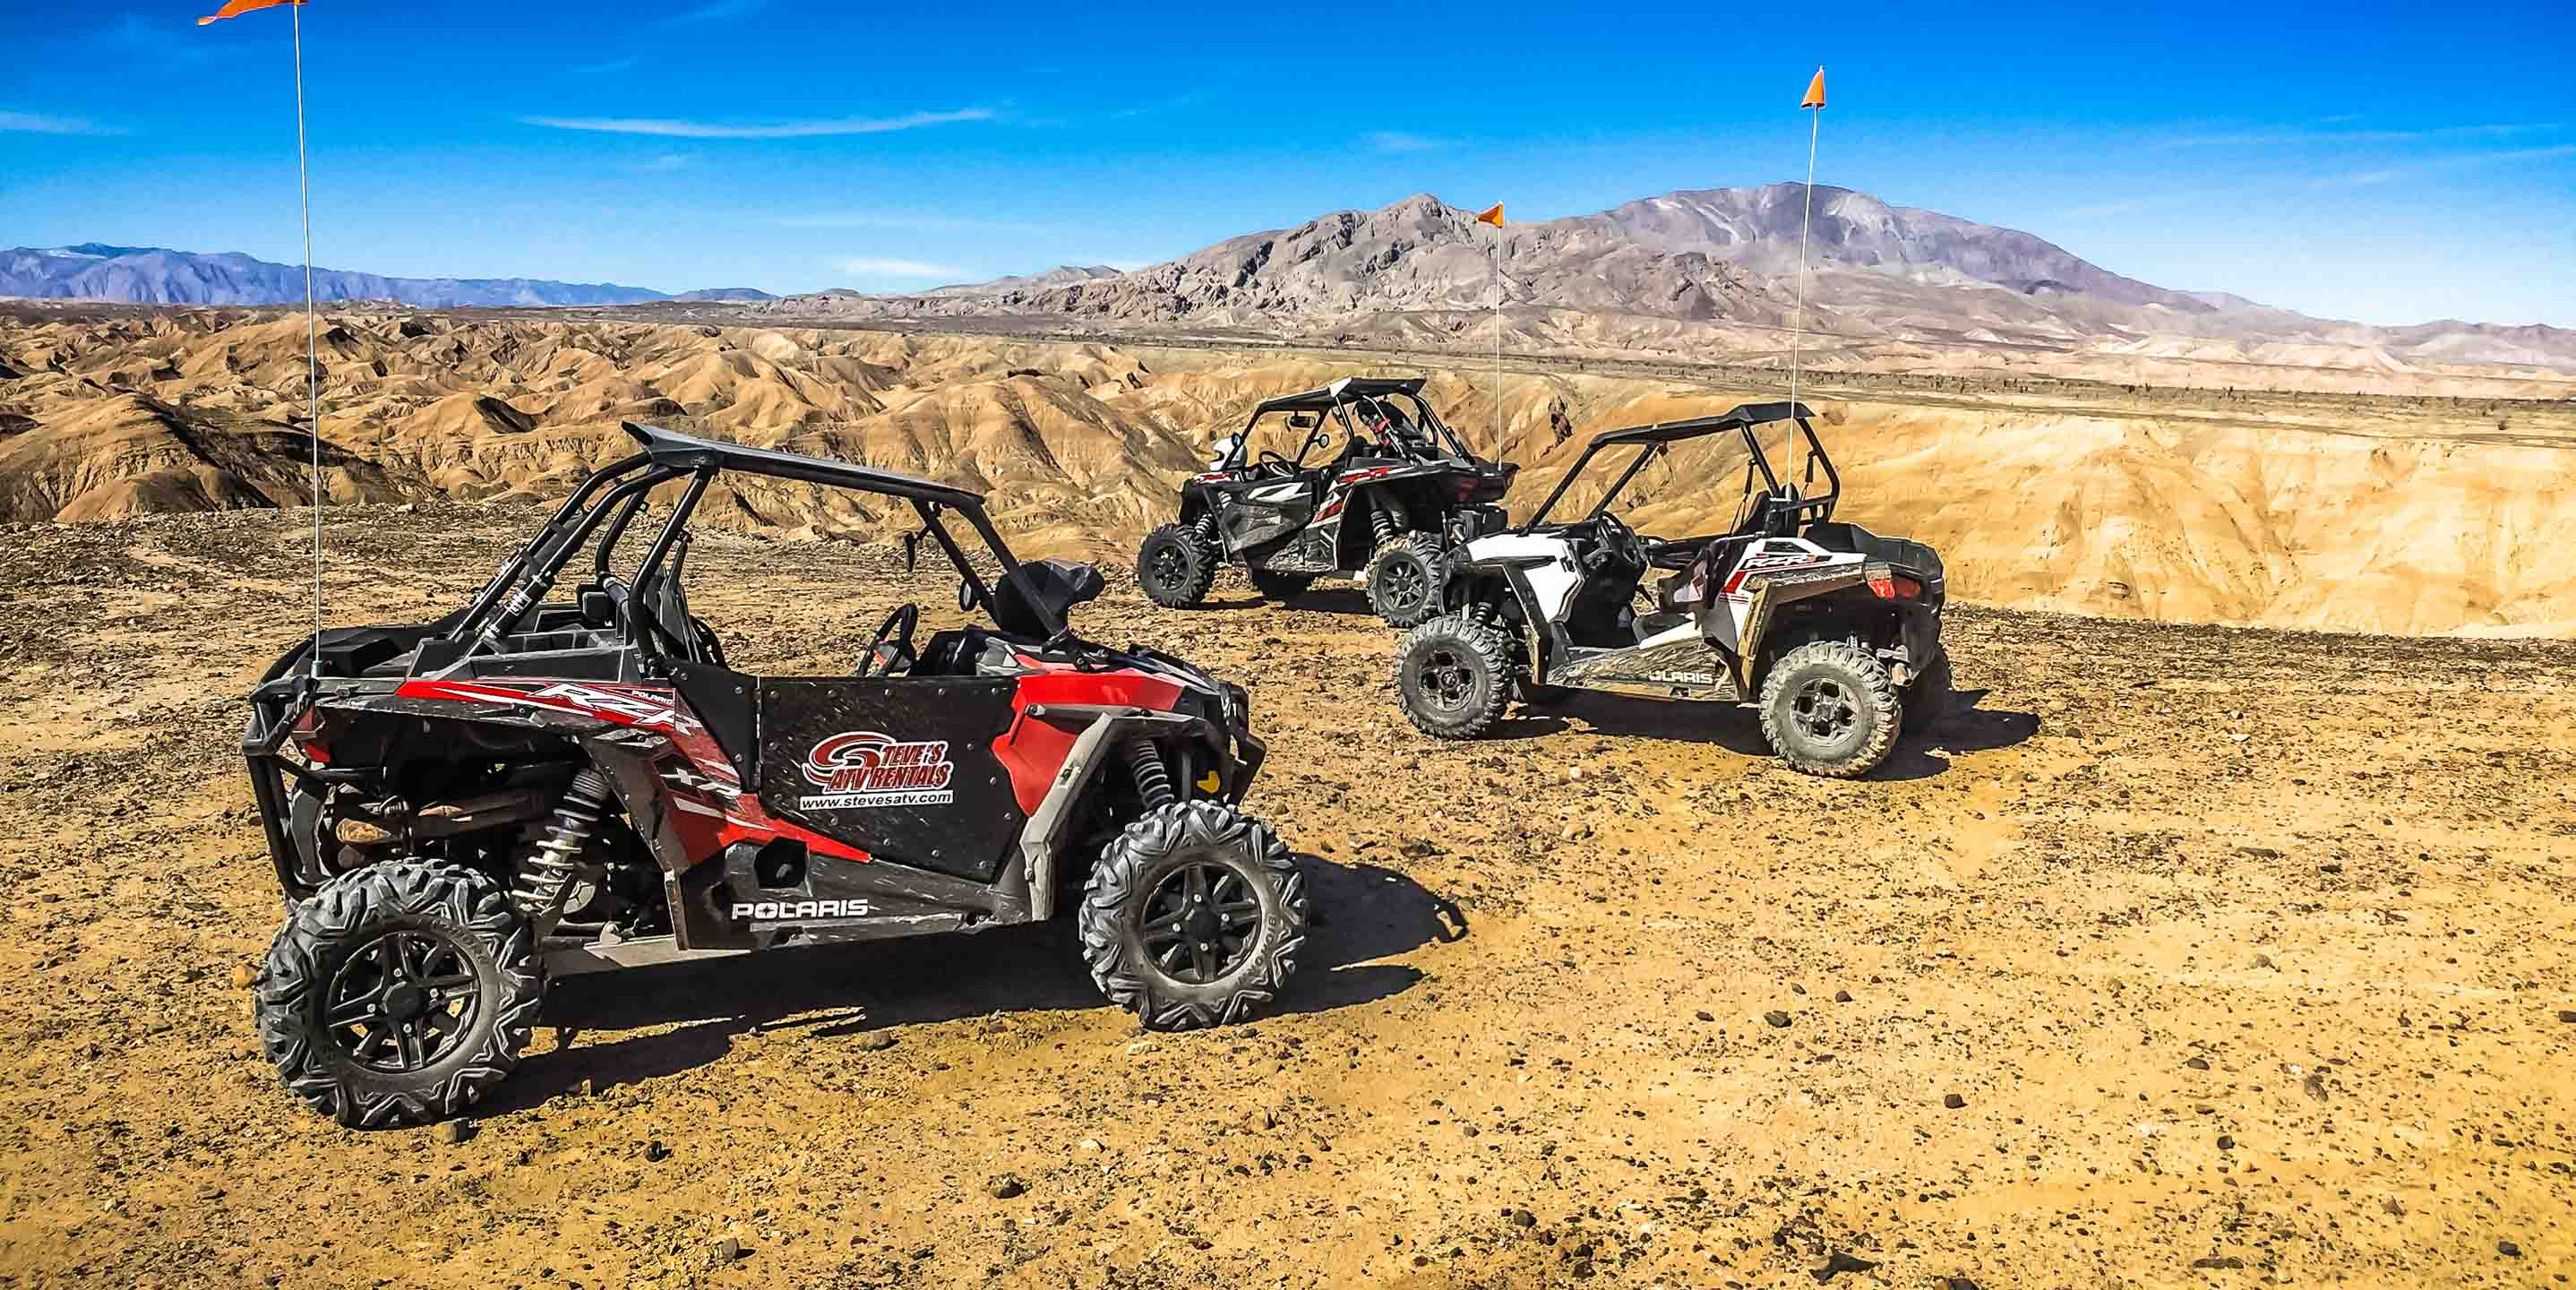 Experience the Ultimate Off-Road Adventure in the Palm Springs Area - Steve's ATV Rentals